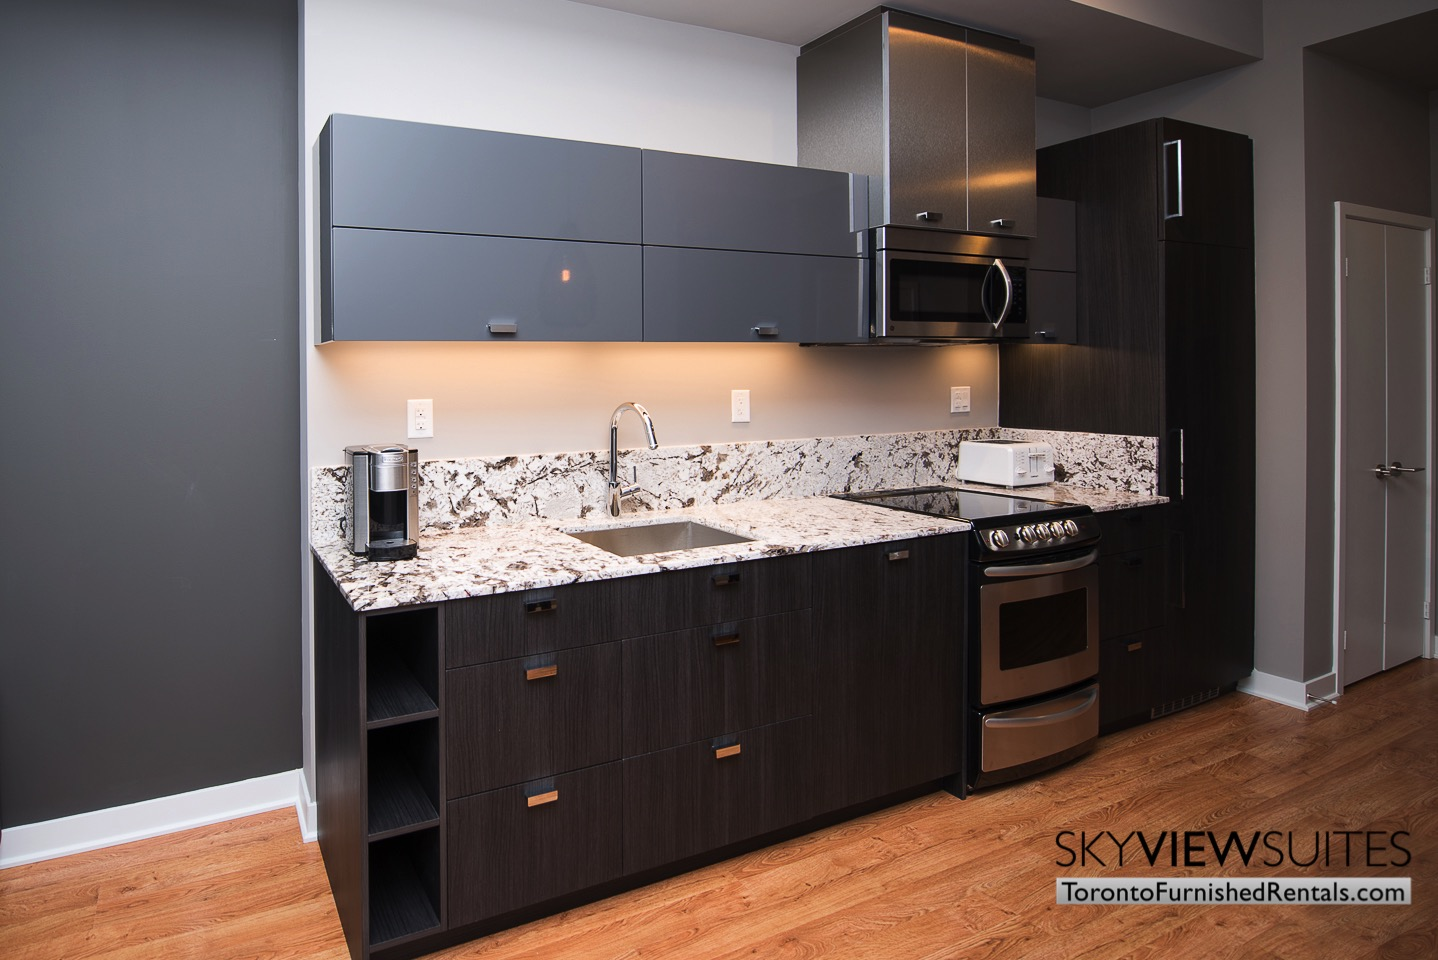 furnished-rentals-toronto-kitchen-financial-district